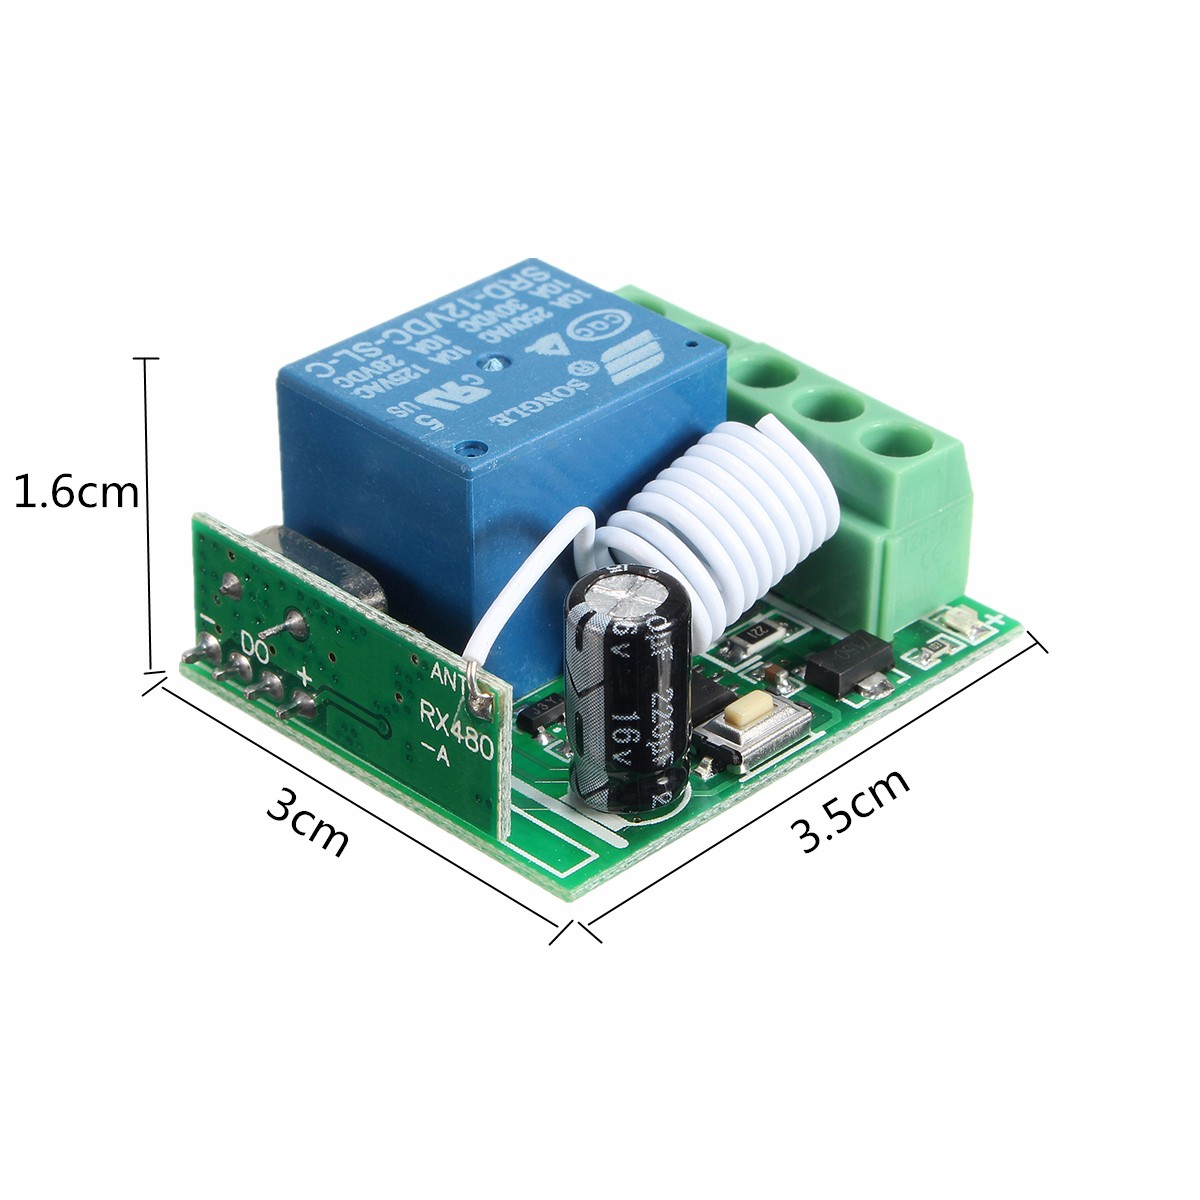 Dc 12v 10a 1ch 433mhz Relay Wireless Rf Remote Control Switch Receiver Module 12 Volt Transmitter Schematic With